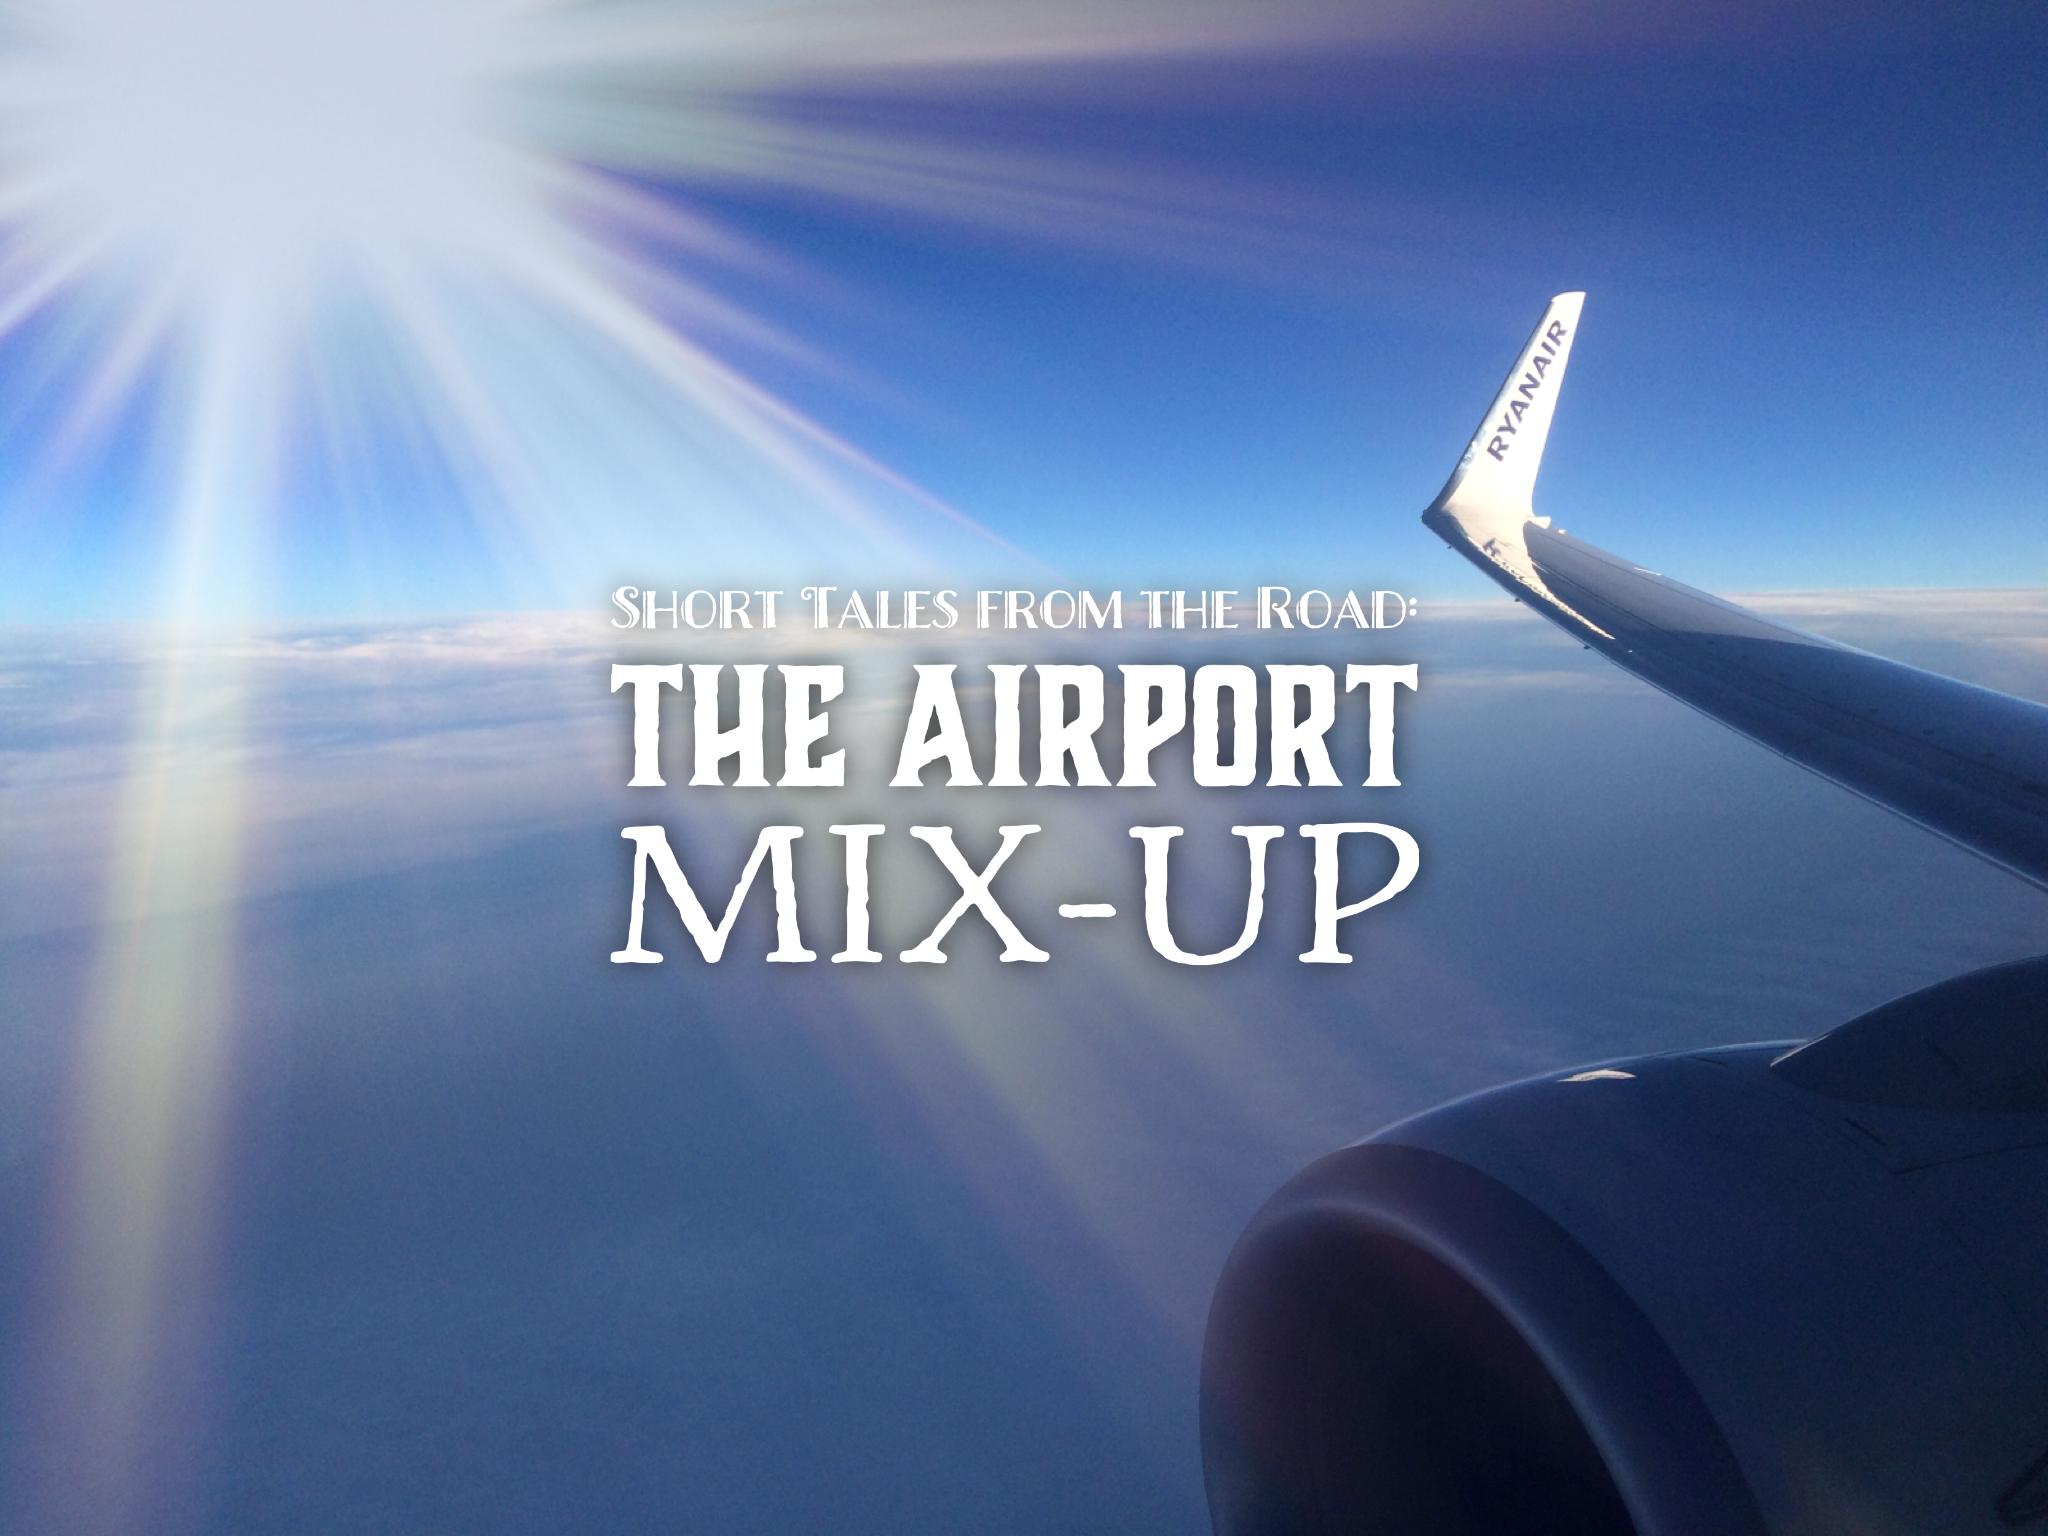 Short Tales from the Road: The Airport Mix-Up